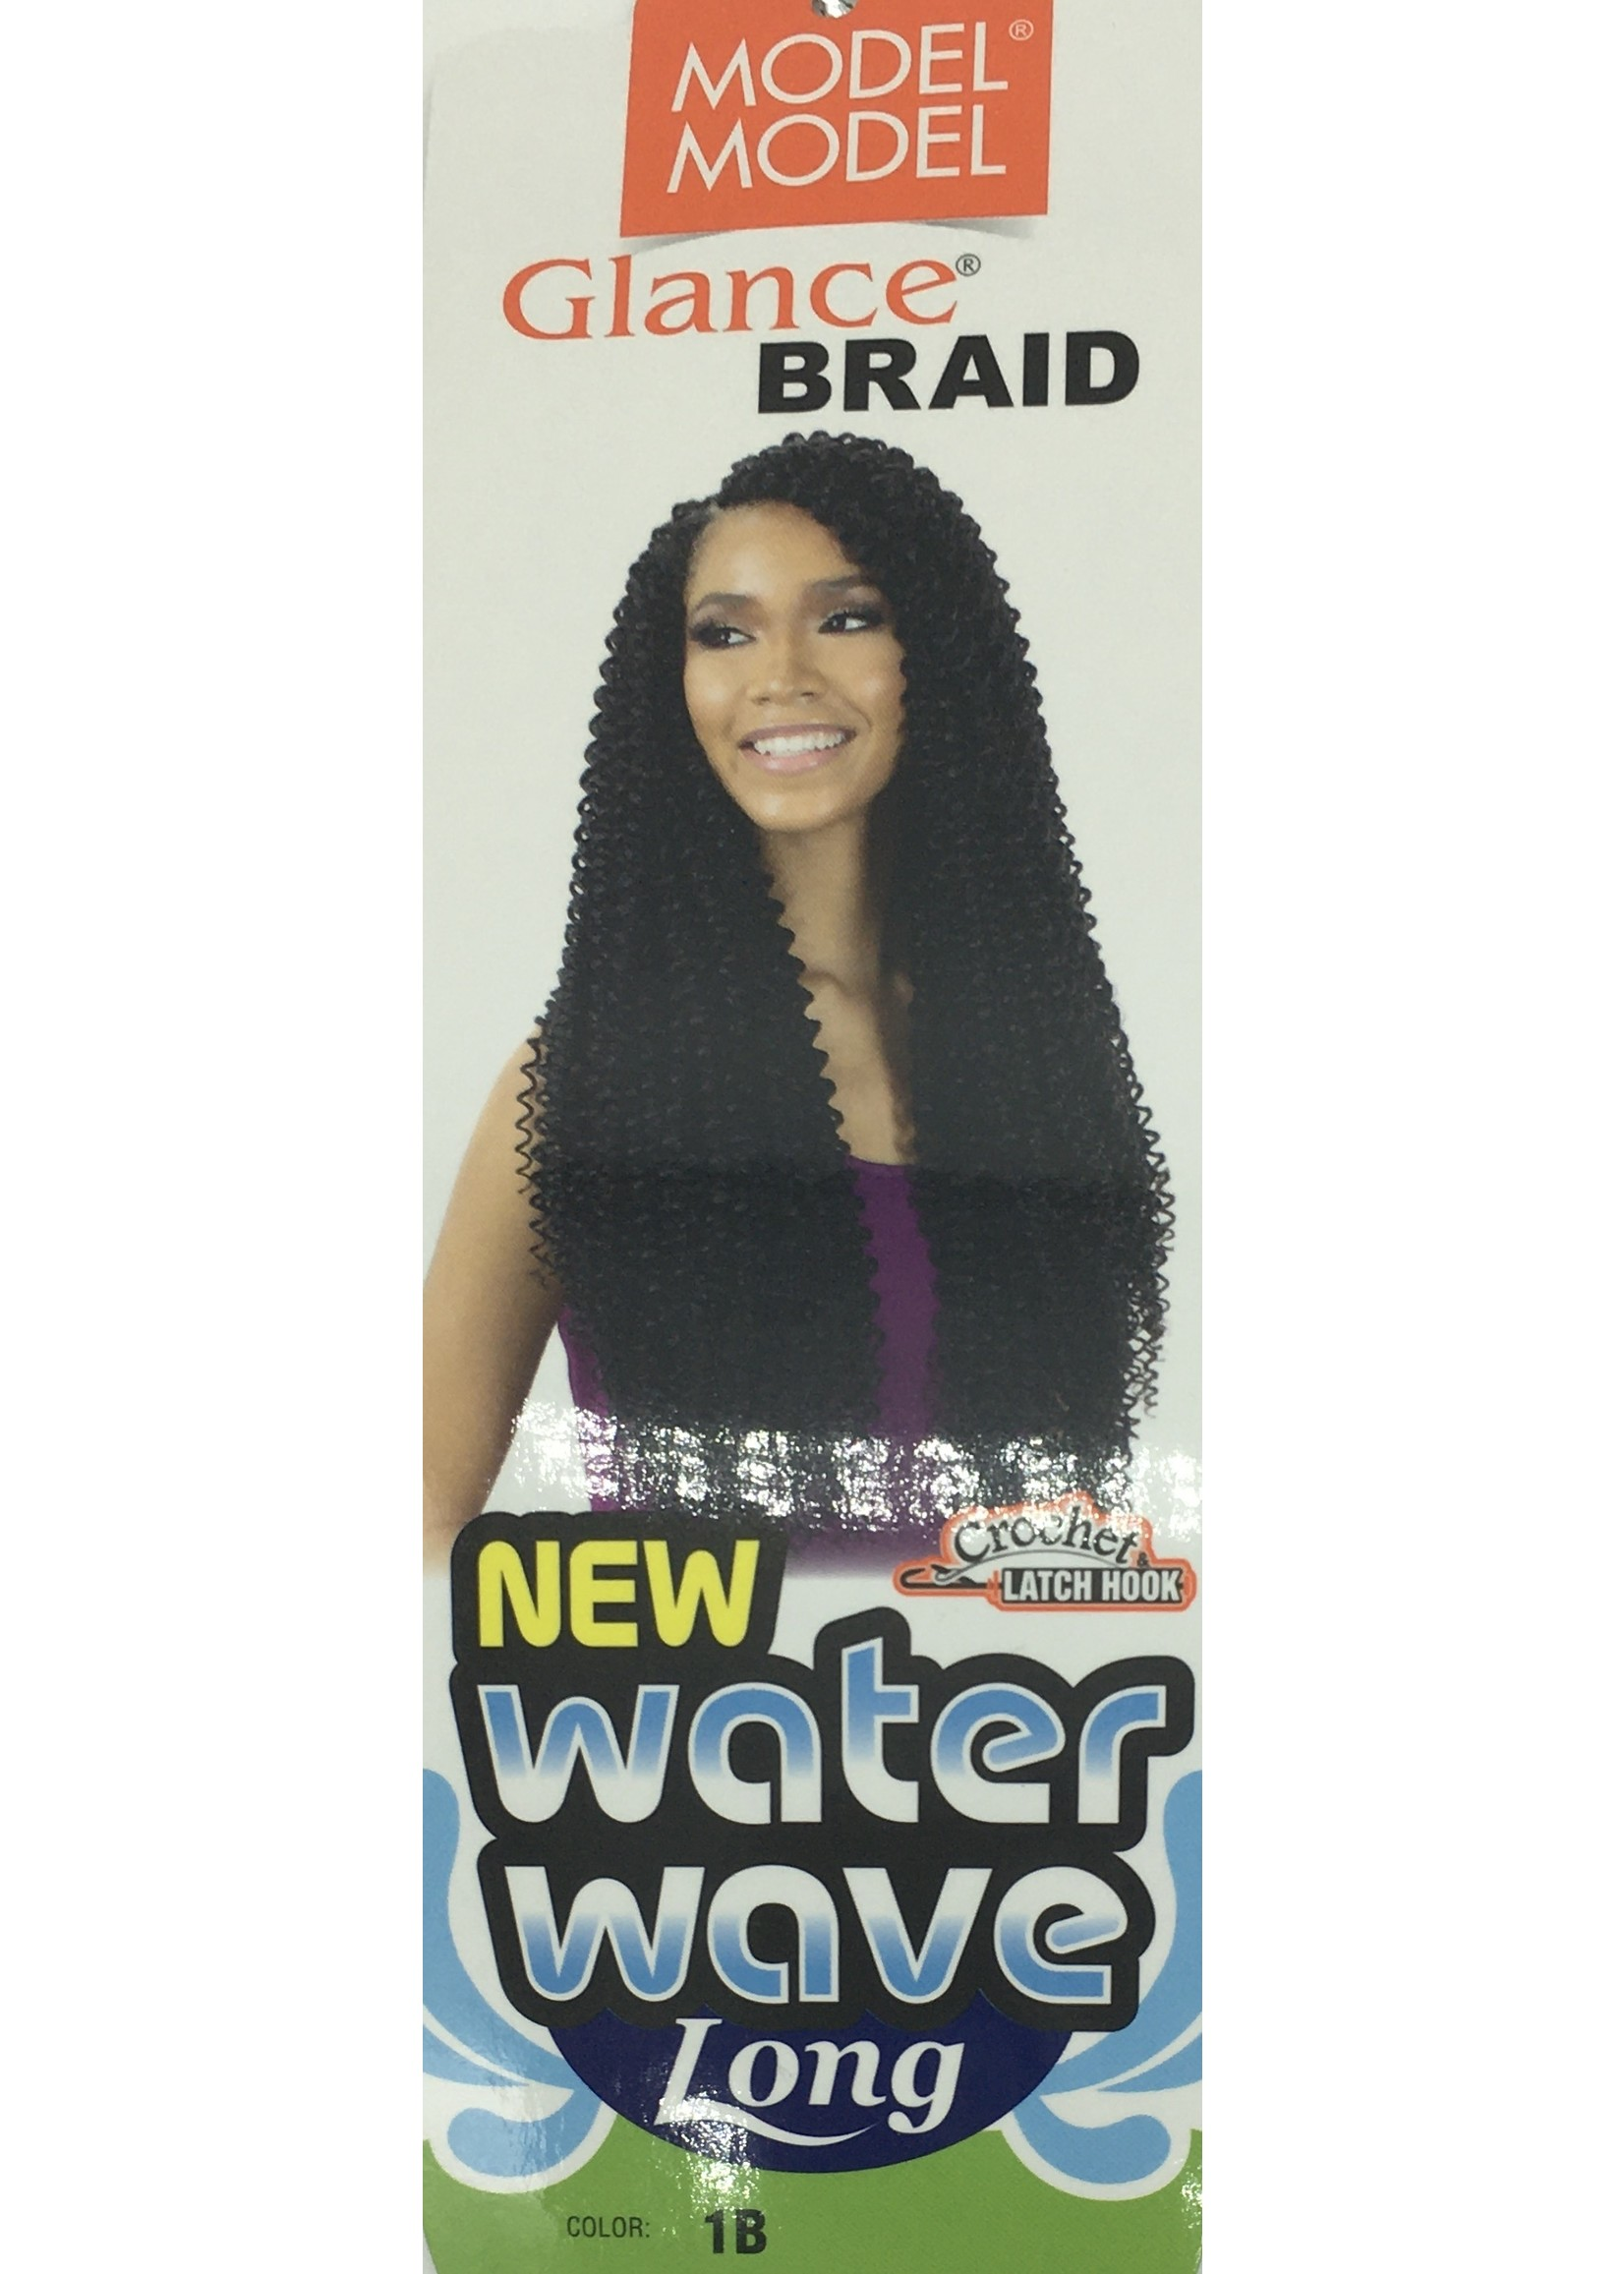 New Water Wave Long